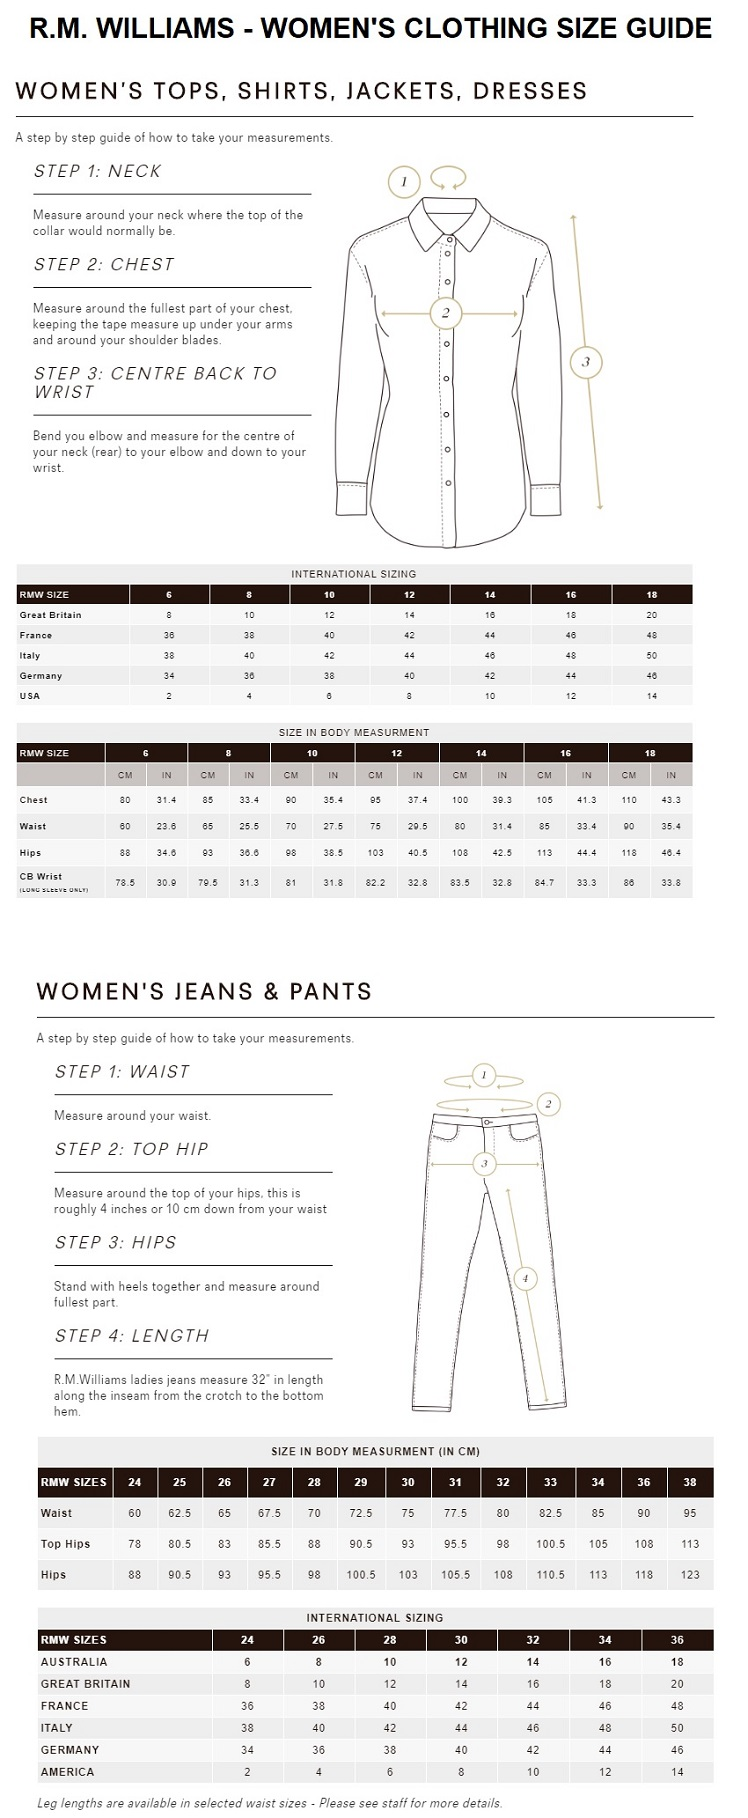 RM Williams - Women's Size Guide